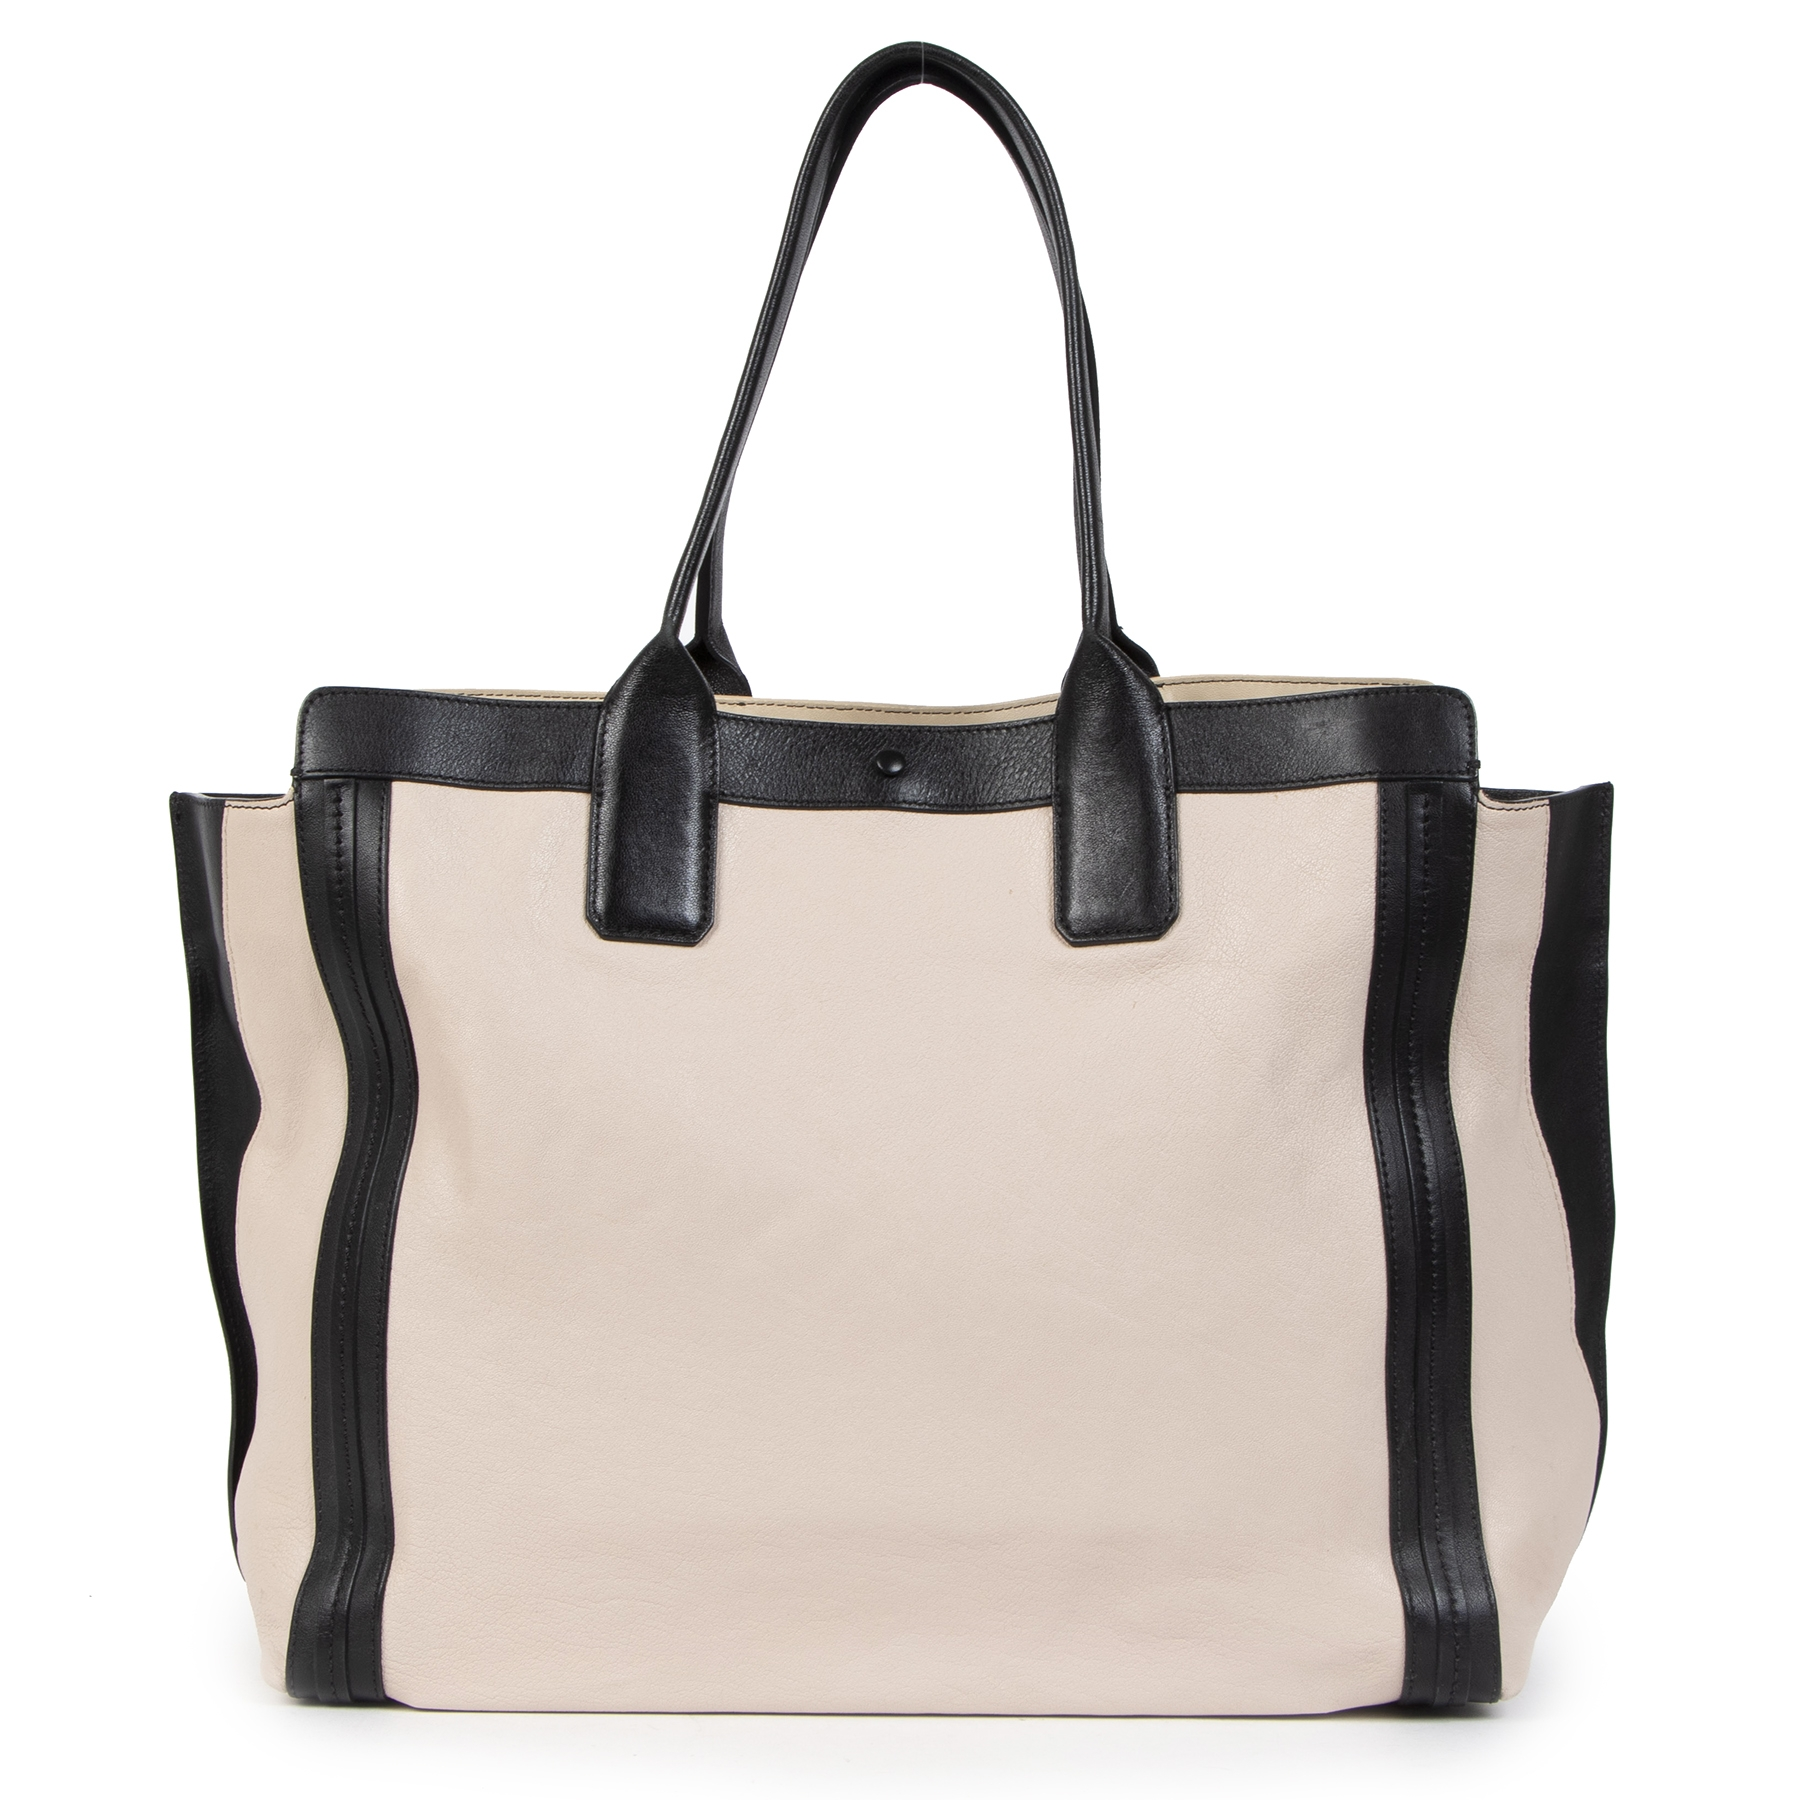 Authentieke tweedehands vintage Chloé Alison East West Bicolor Shopping Tote koop online webshop LabelLOV